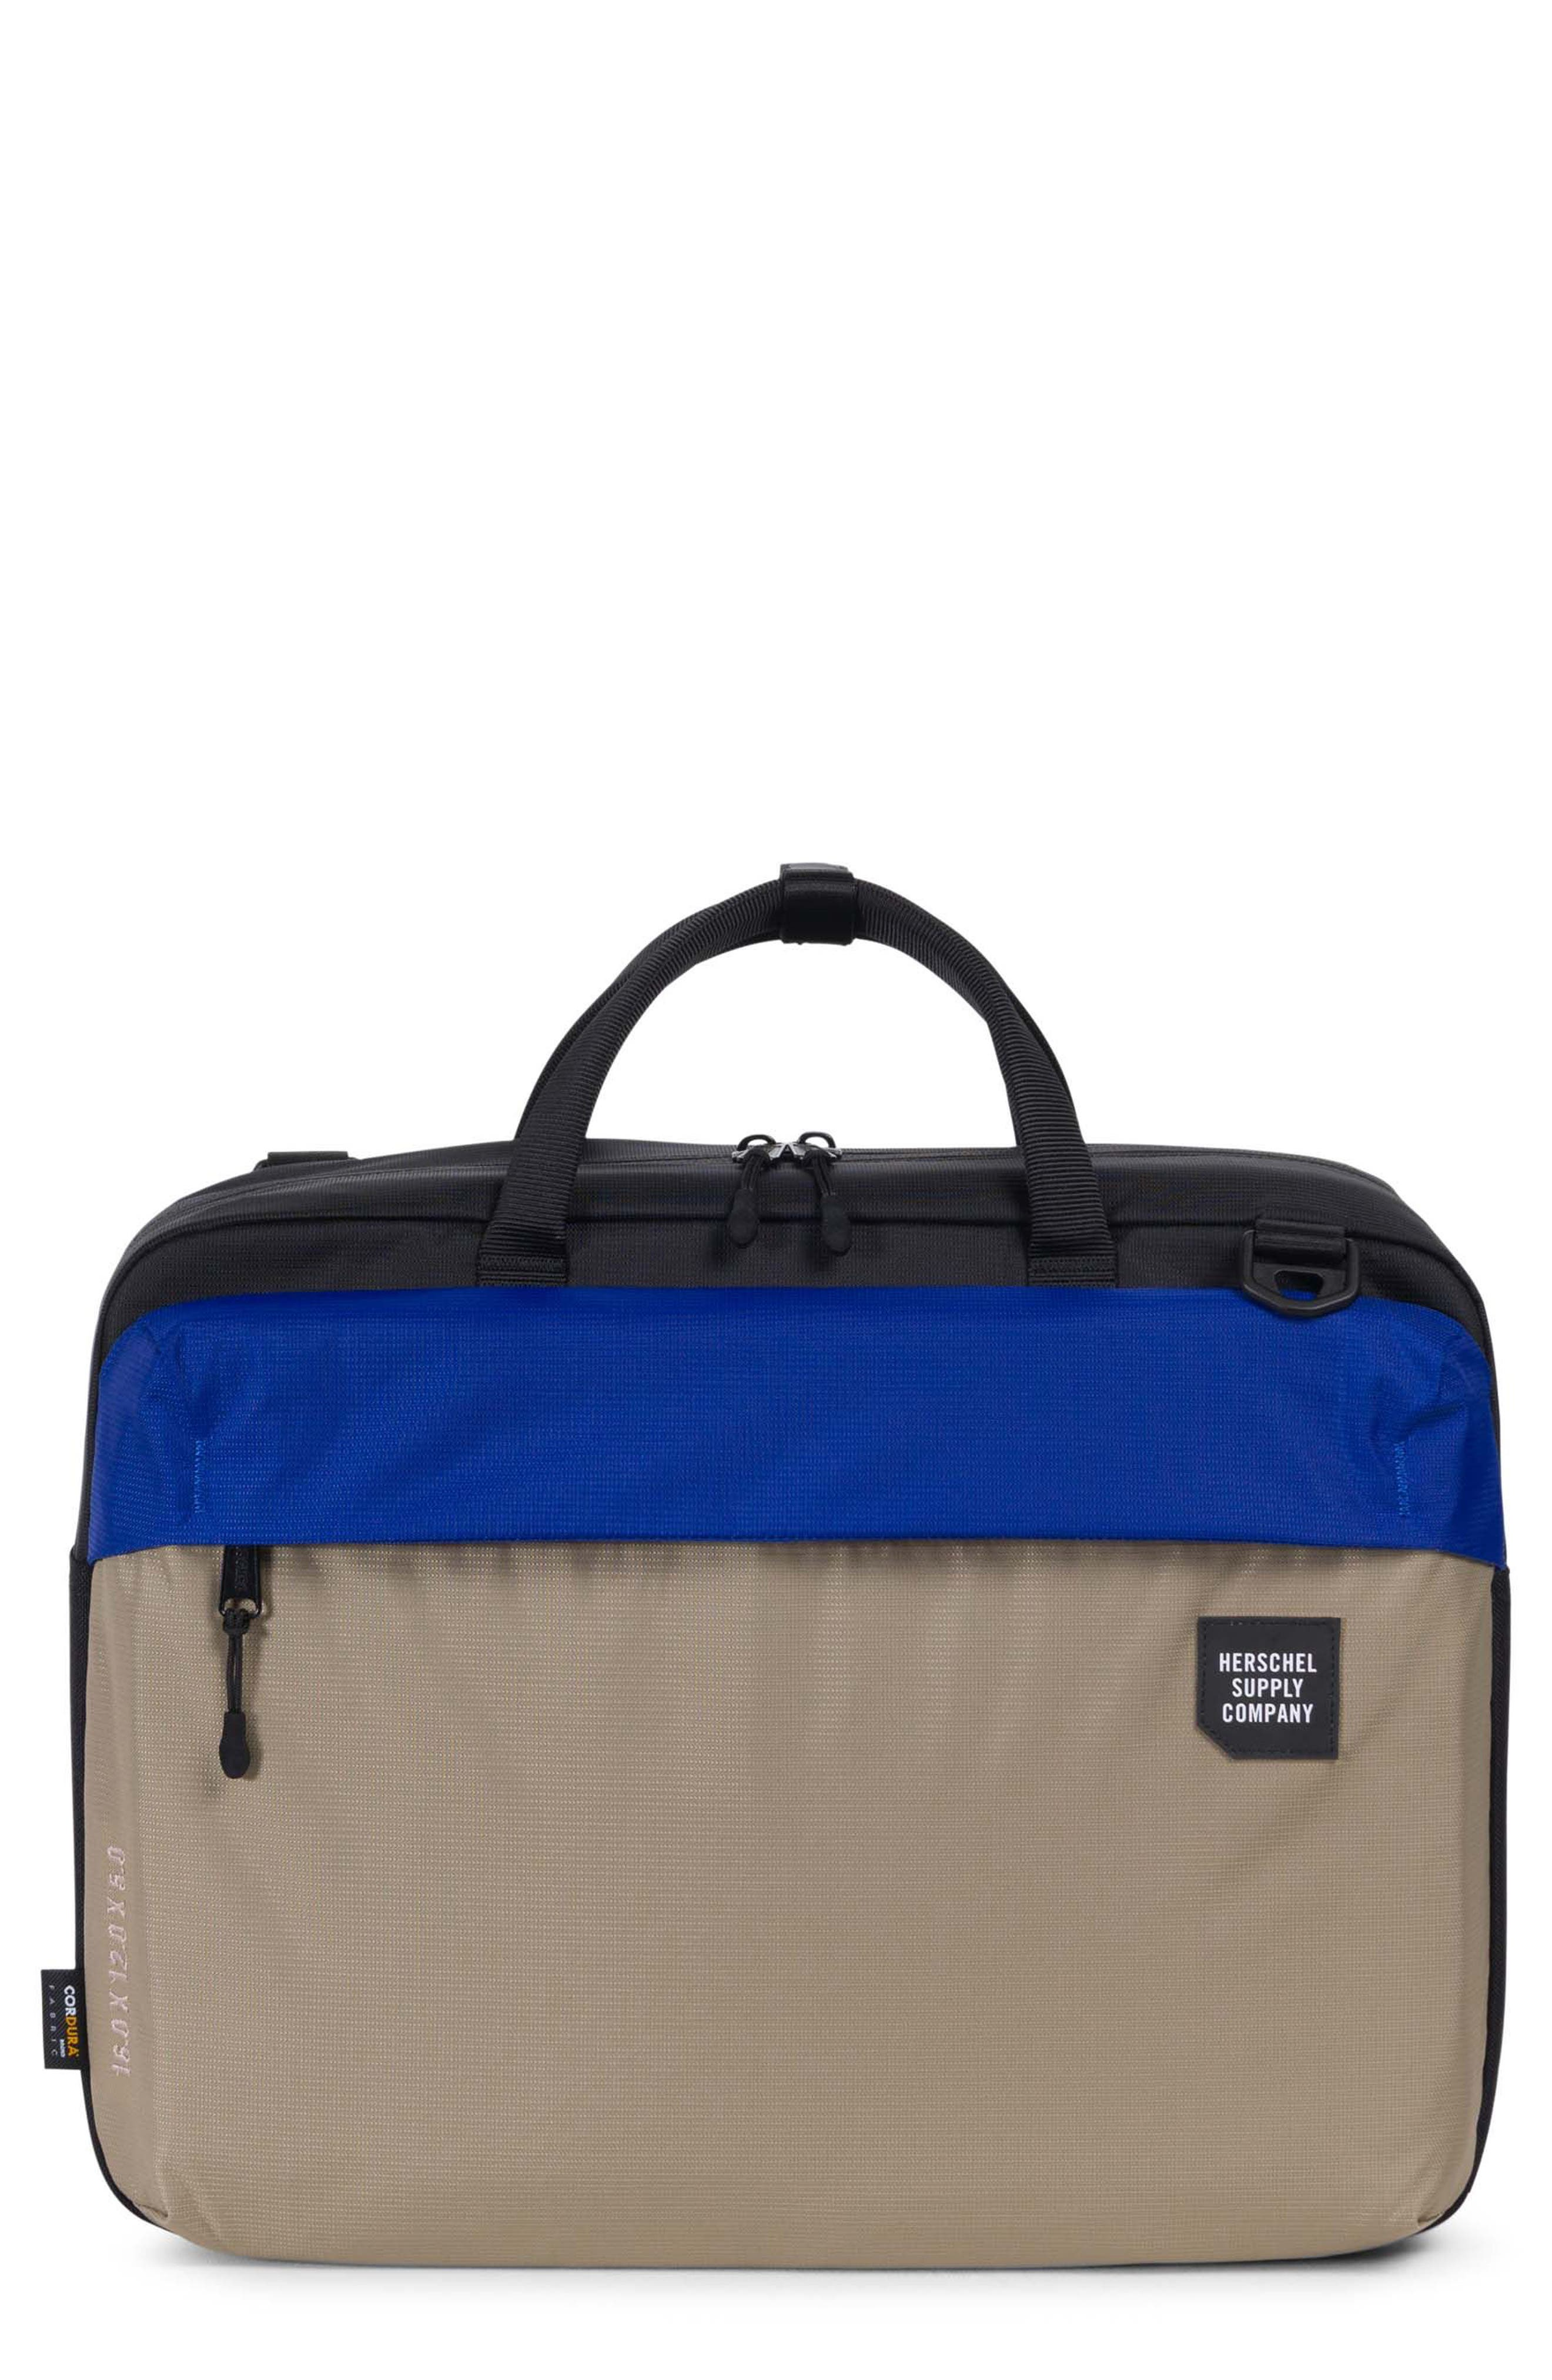 Herschel Supply Co. Britannia Trail Collection Convertible Messenger Bag